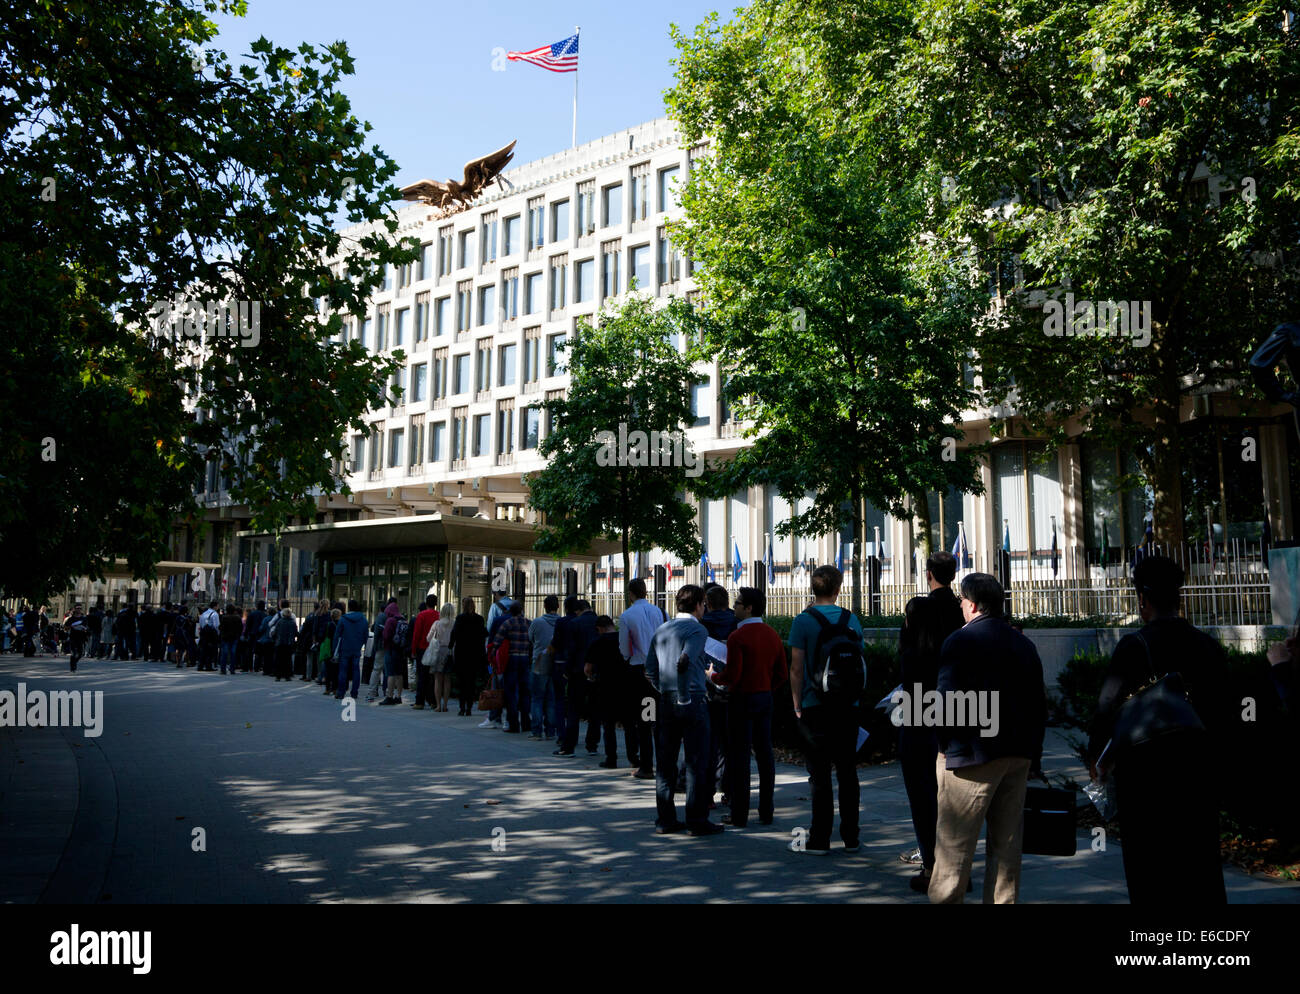 Queue For Security Check At U S Embassy In Grosvenor Square Mayfair London